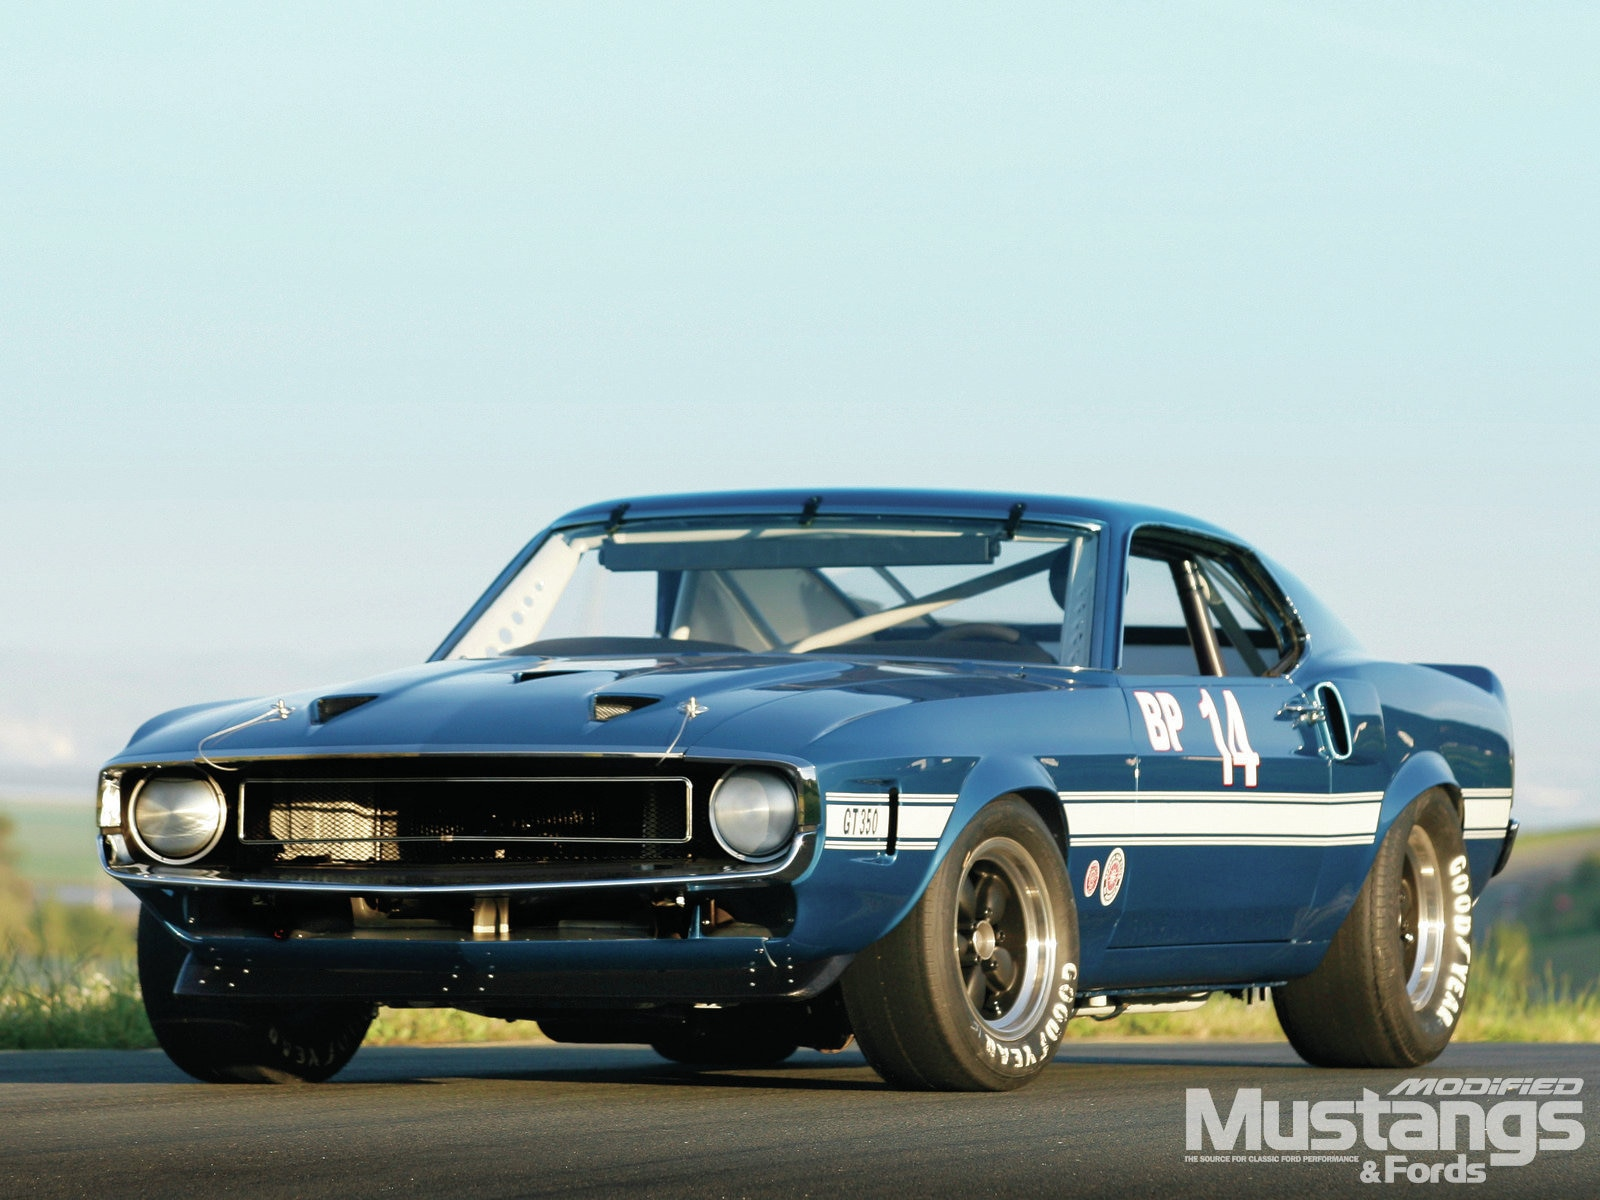 Mdmp 1301 02 1969 Ford Mustang Shelby Gt 500 Doane Spencer